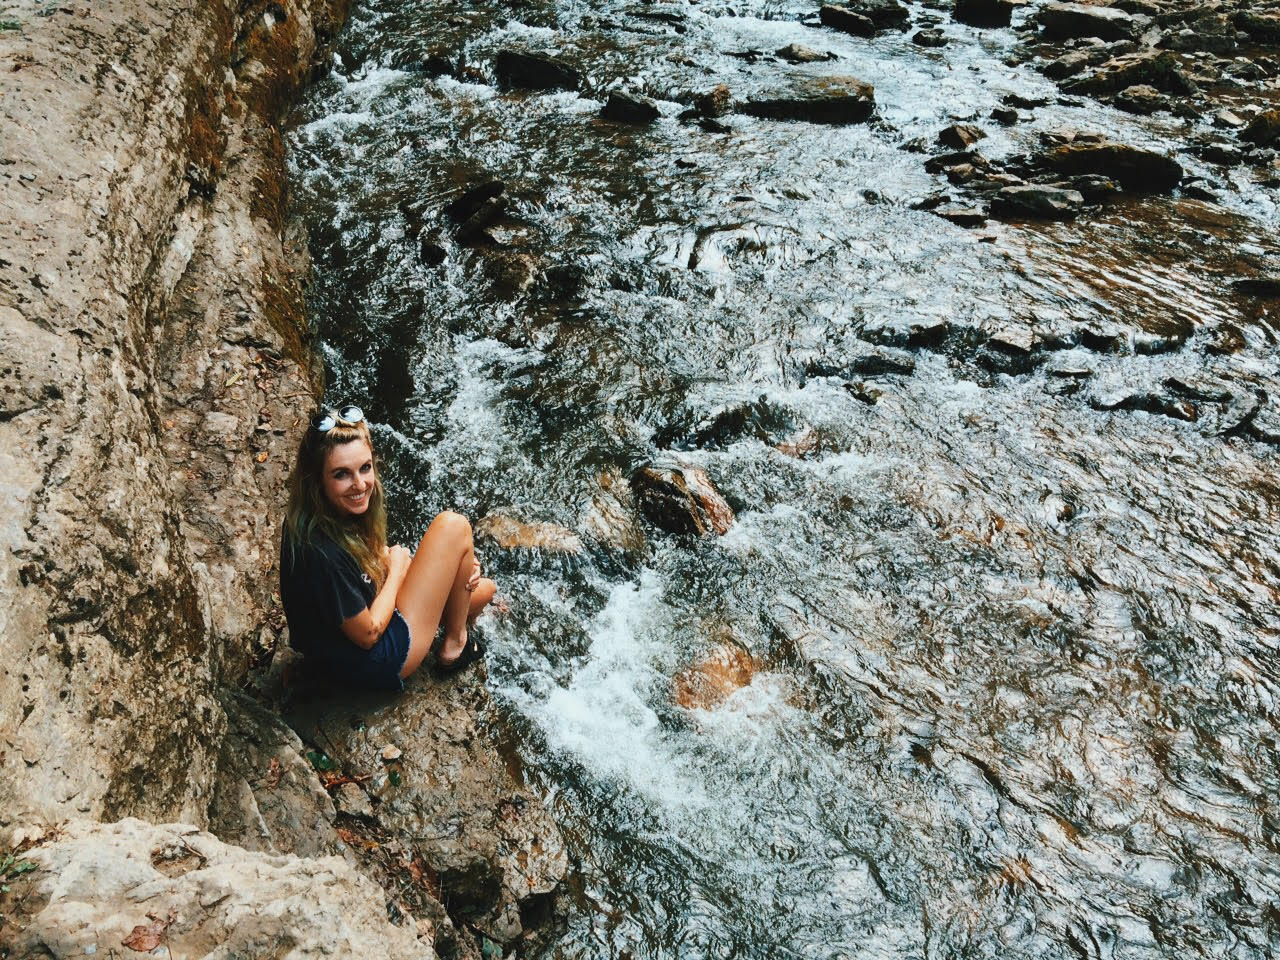 Me! At Cummins Fall, outside of Nashville, TN